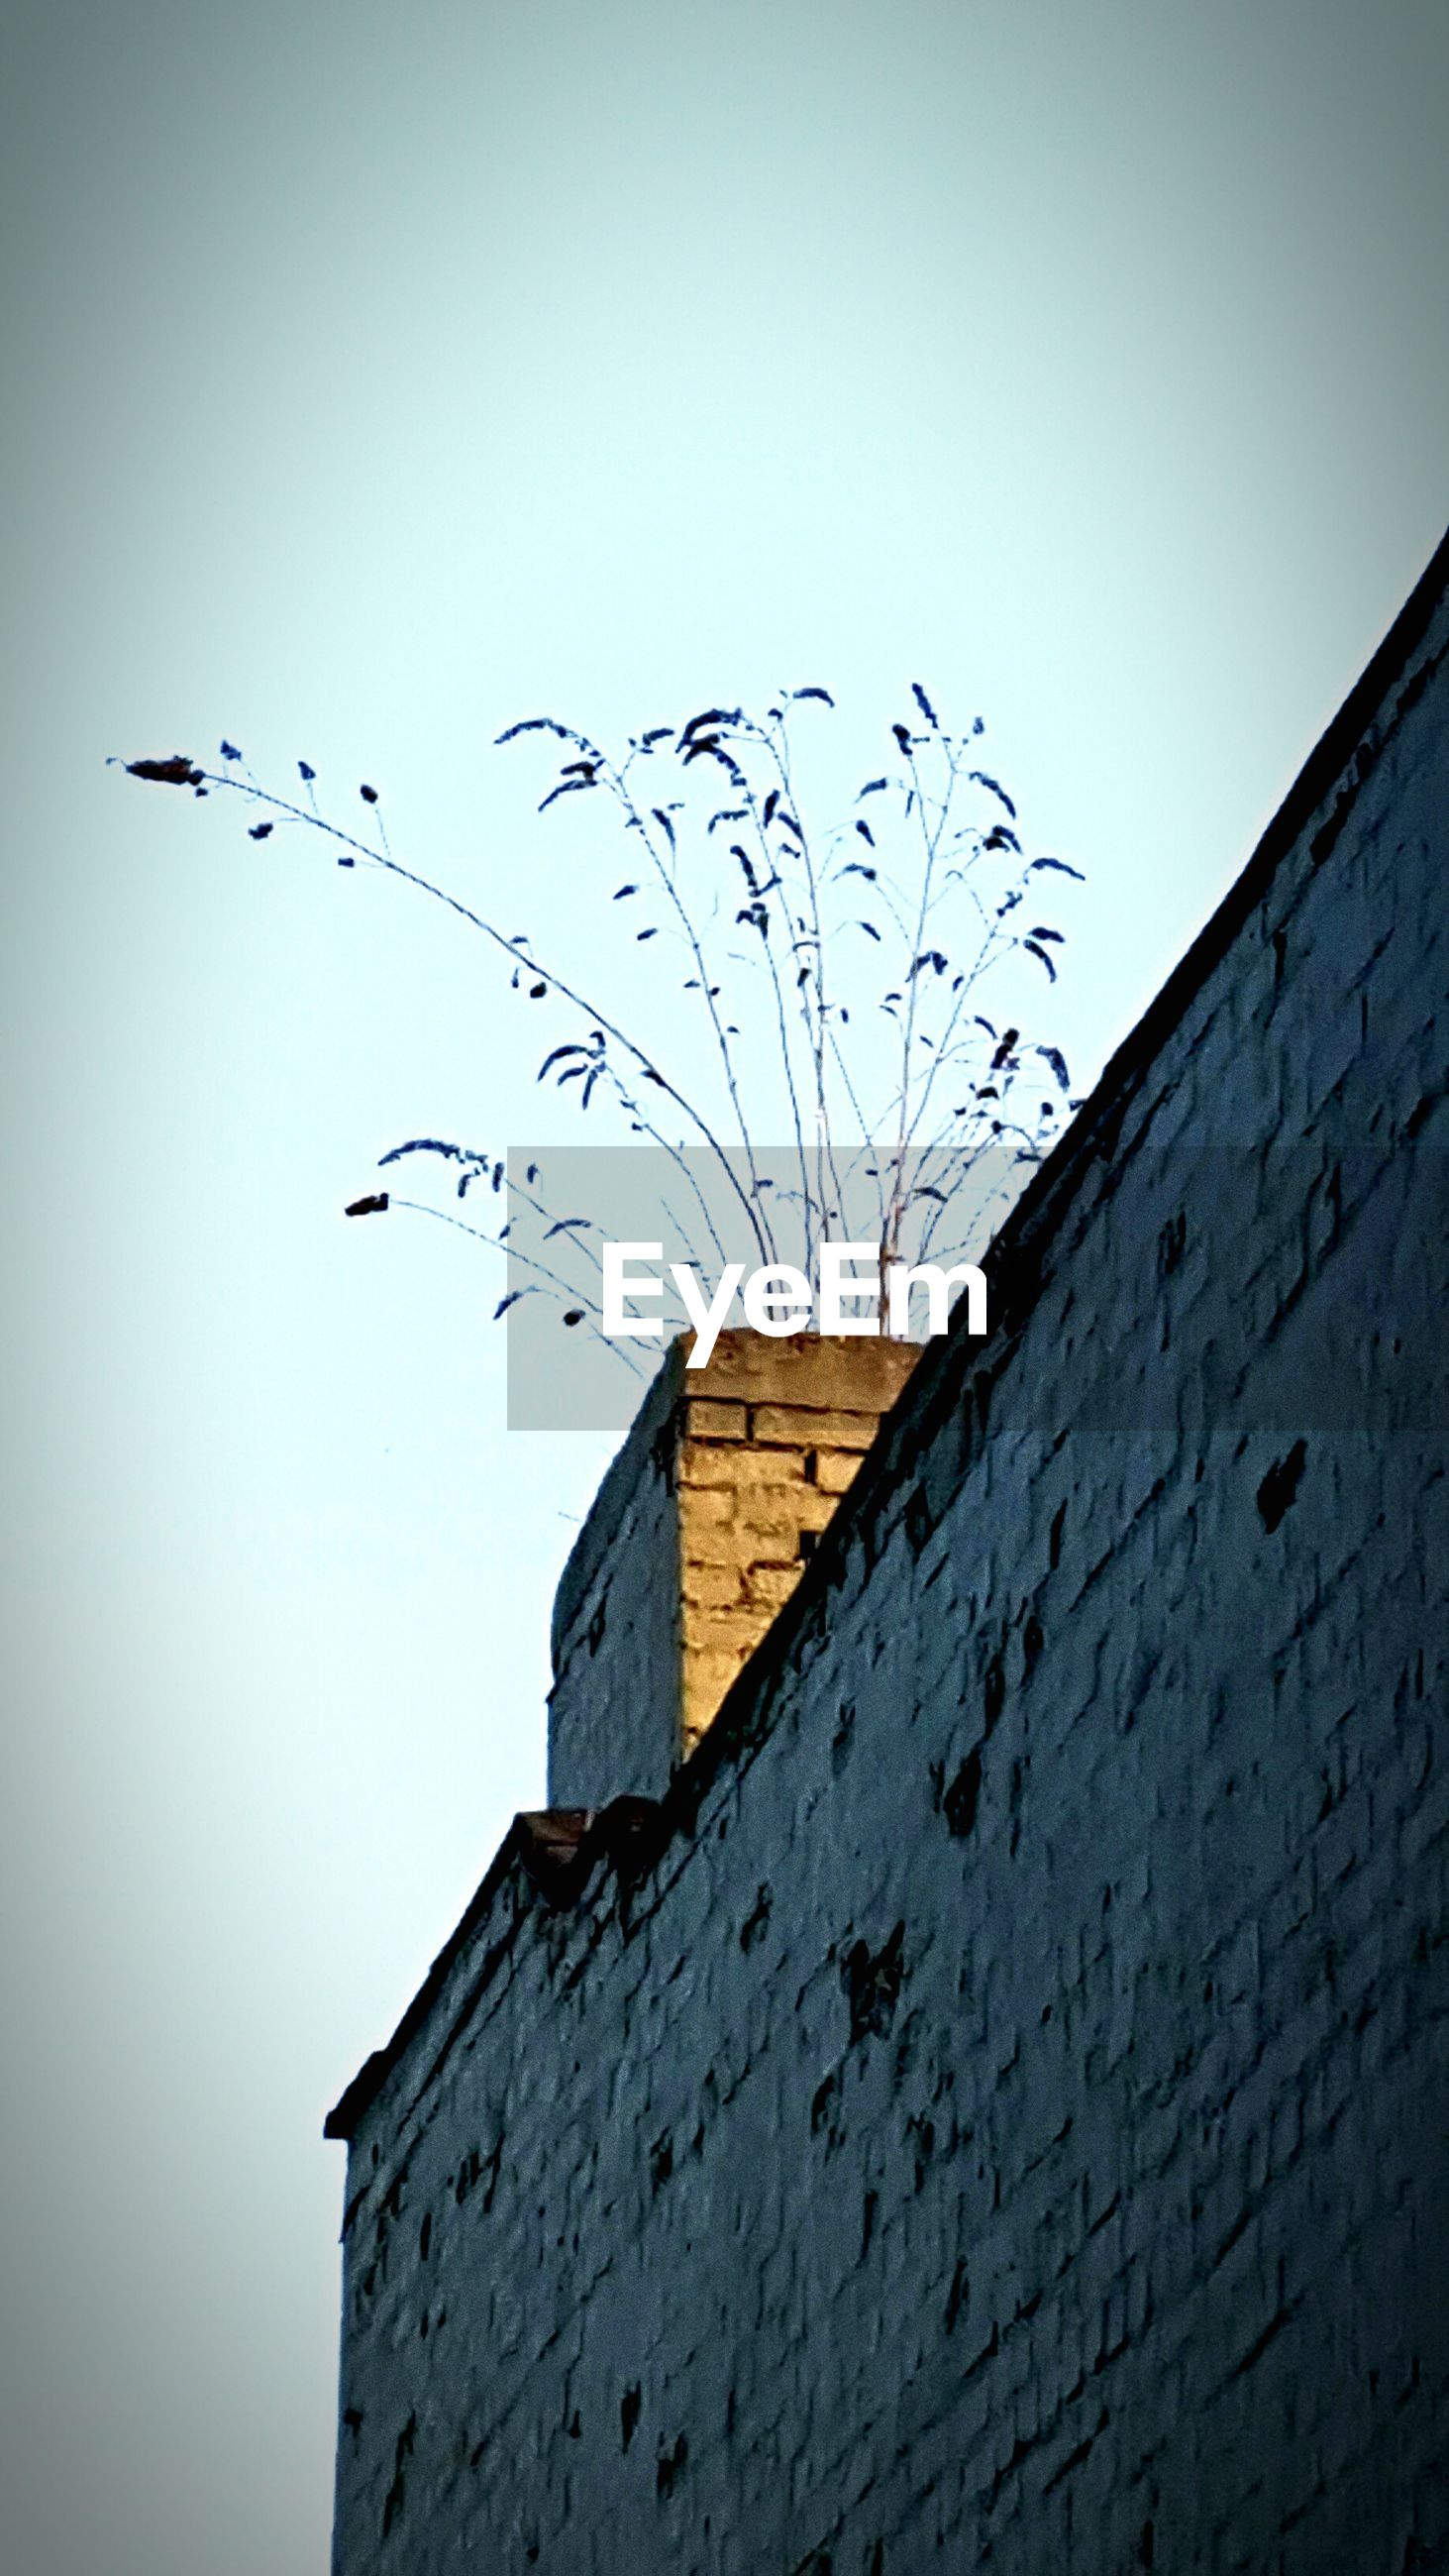 bird, architecture, building exterior, built structure, low angle view, animal themes, clear sky, animals in the wild, wildlife, flying, flock of birds, house, copy space, roof, residential structure, day, residential building, building, outdoors